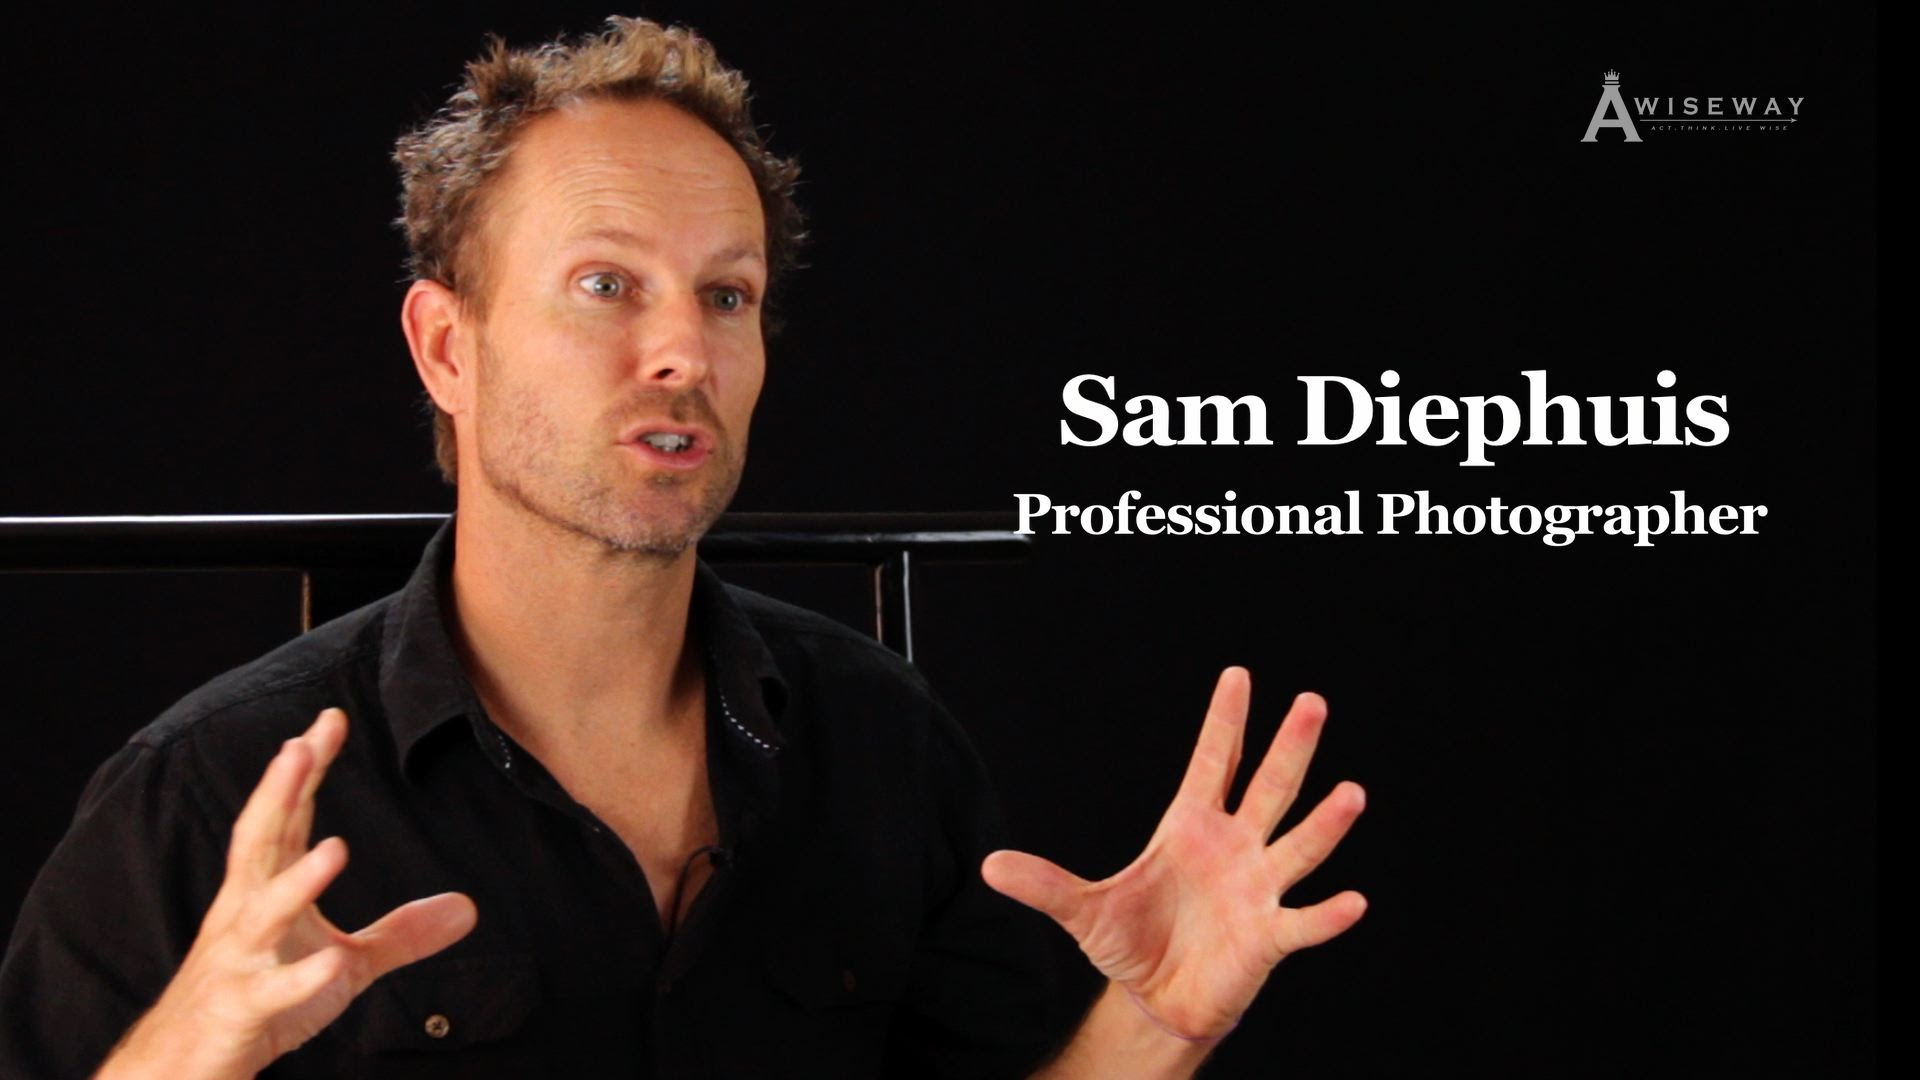 Professional Photographer Shares Advice for Beginners and the Potential within the Artform